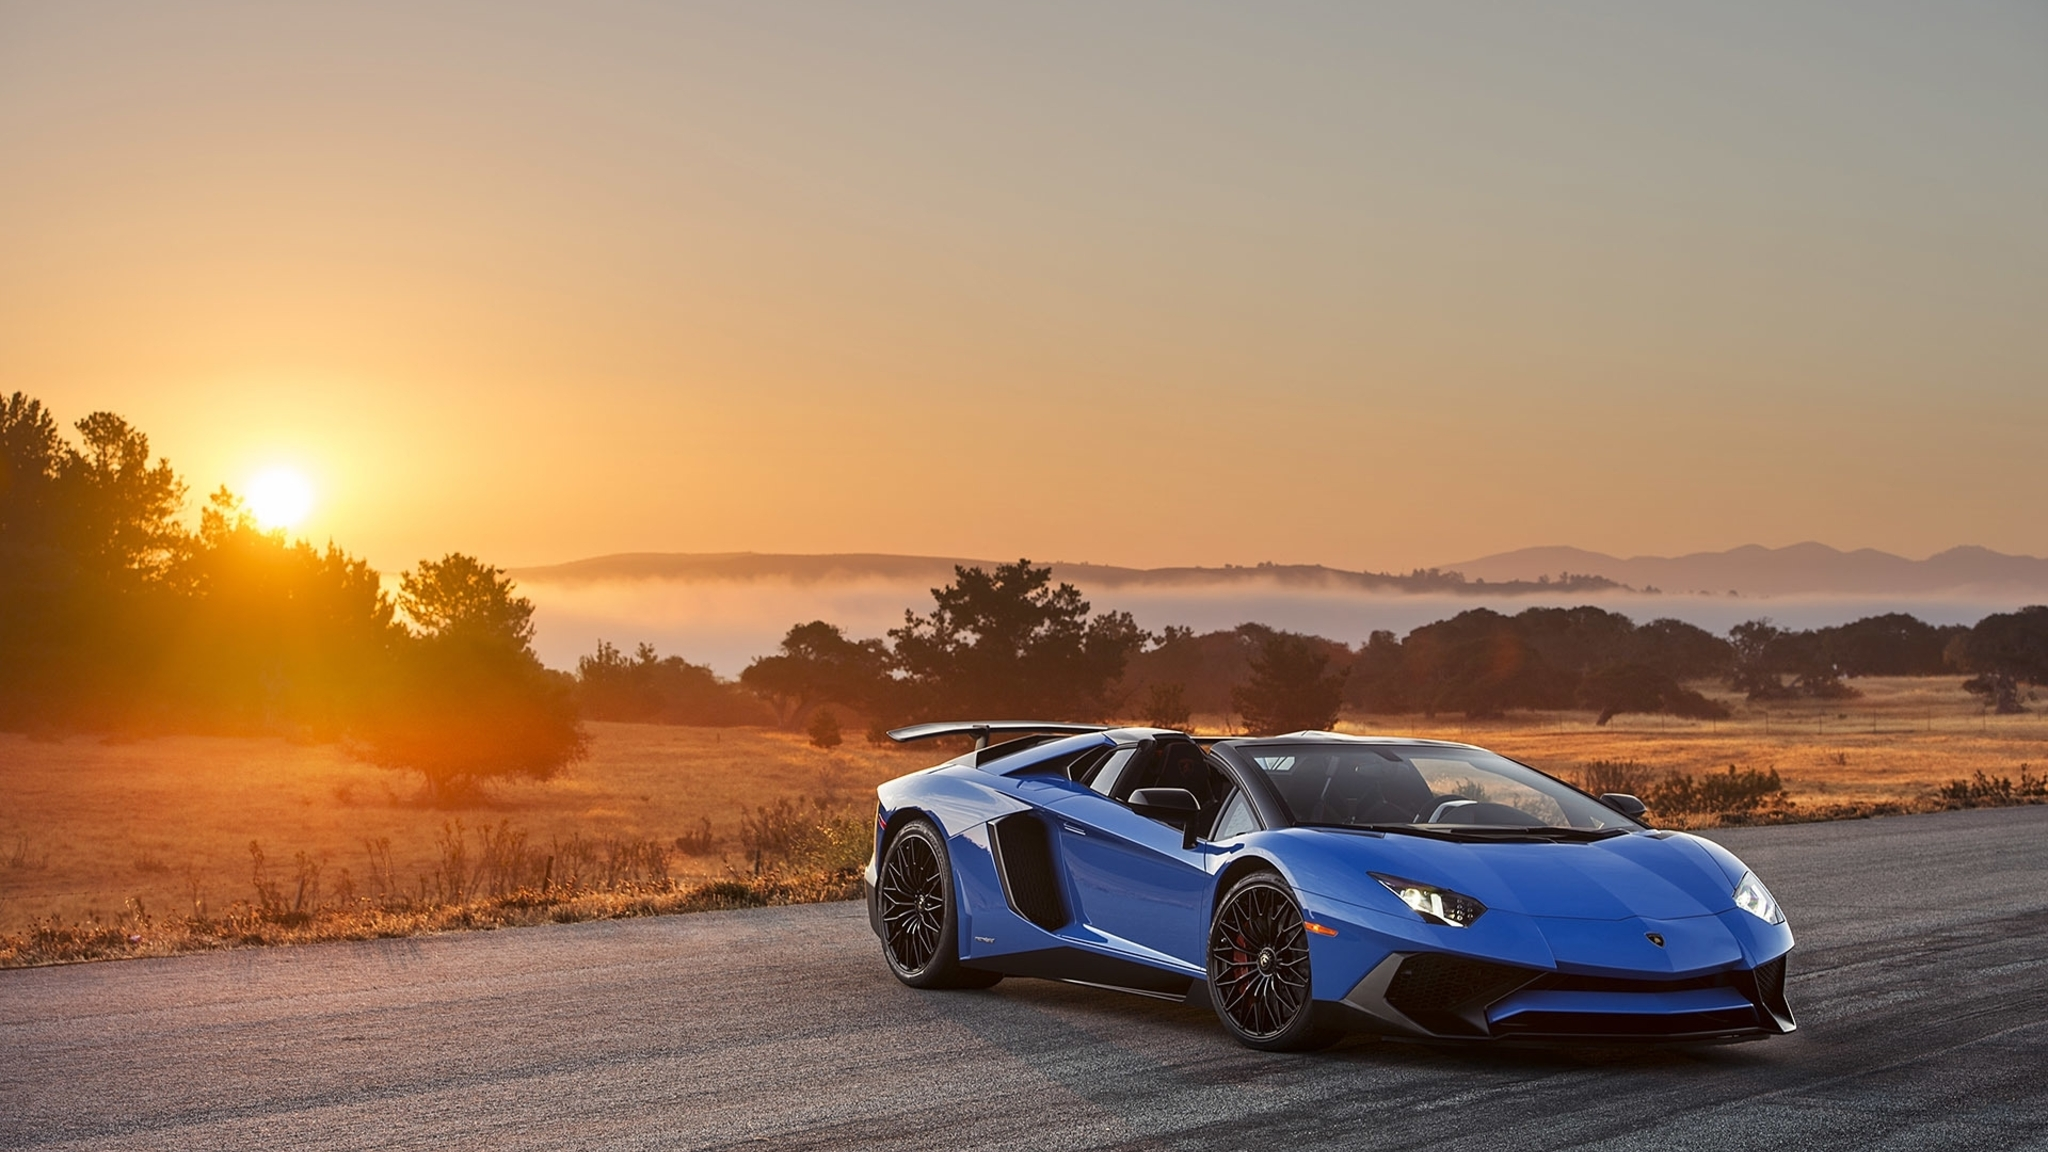 2048x1152 Lamborghini Aventador 3 2048x1152 Resolution HD ...